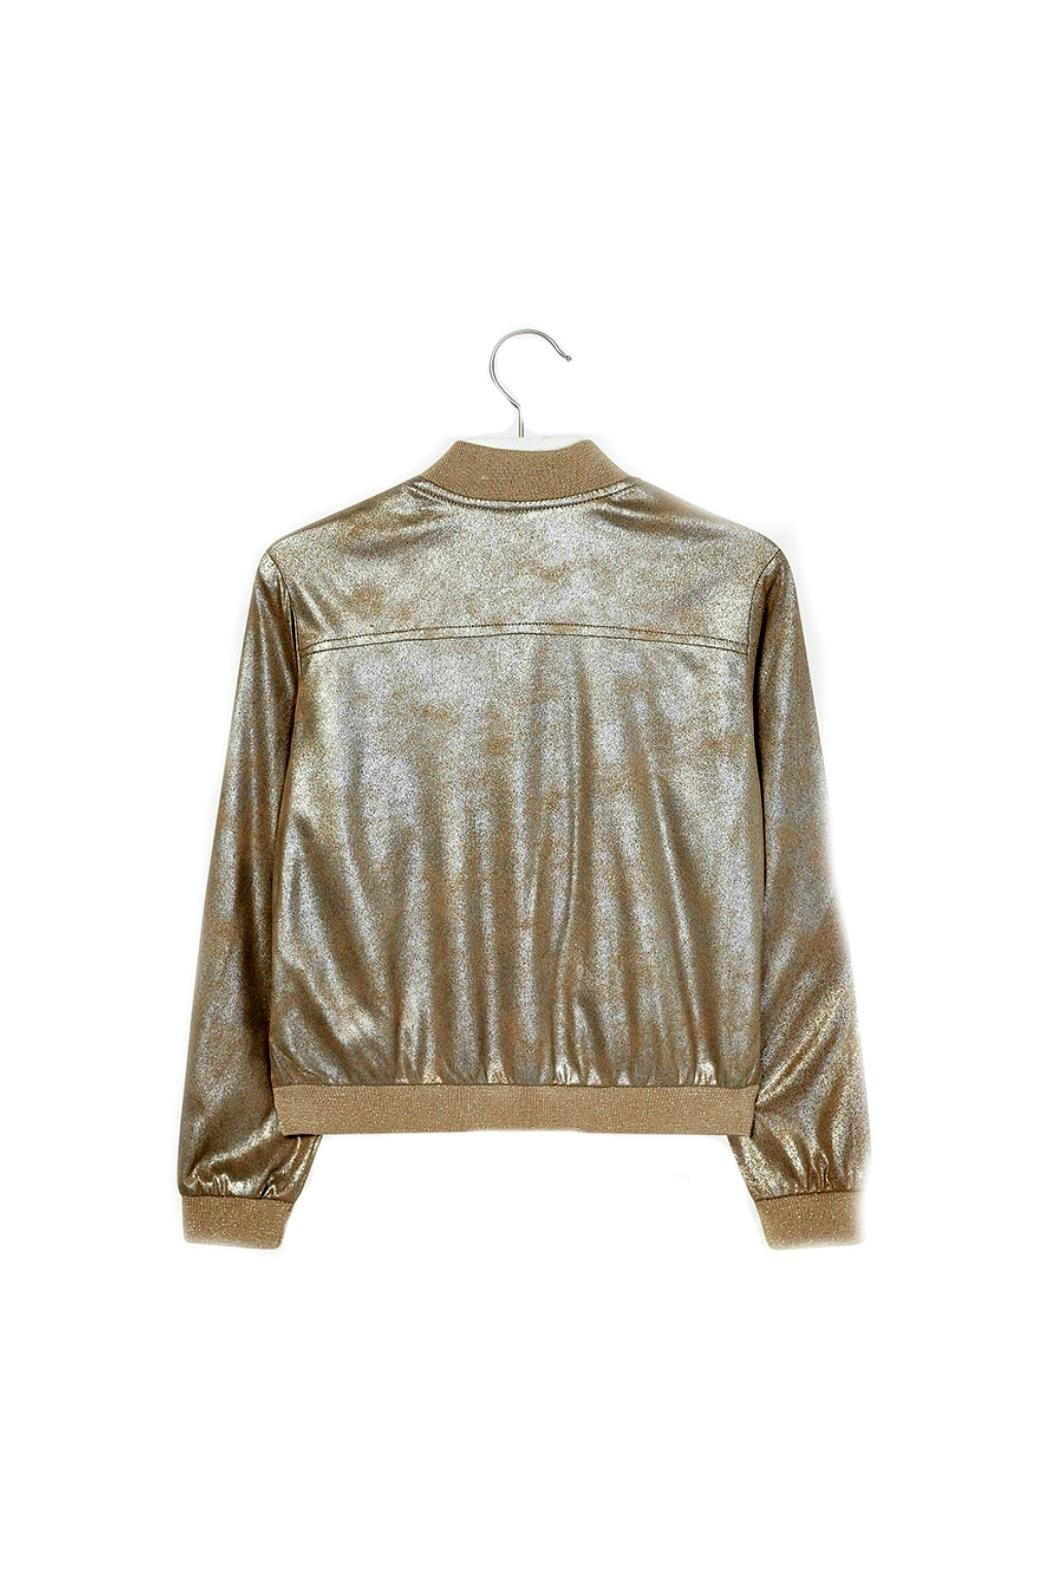 Mayoral Metallic-Faux-Suede Jacket - Front Full Image